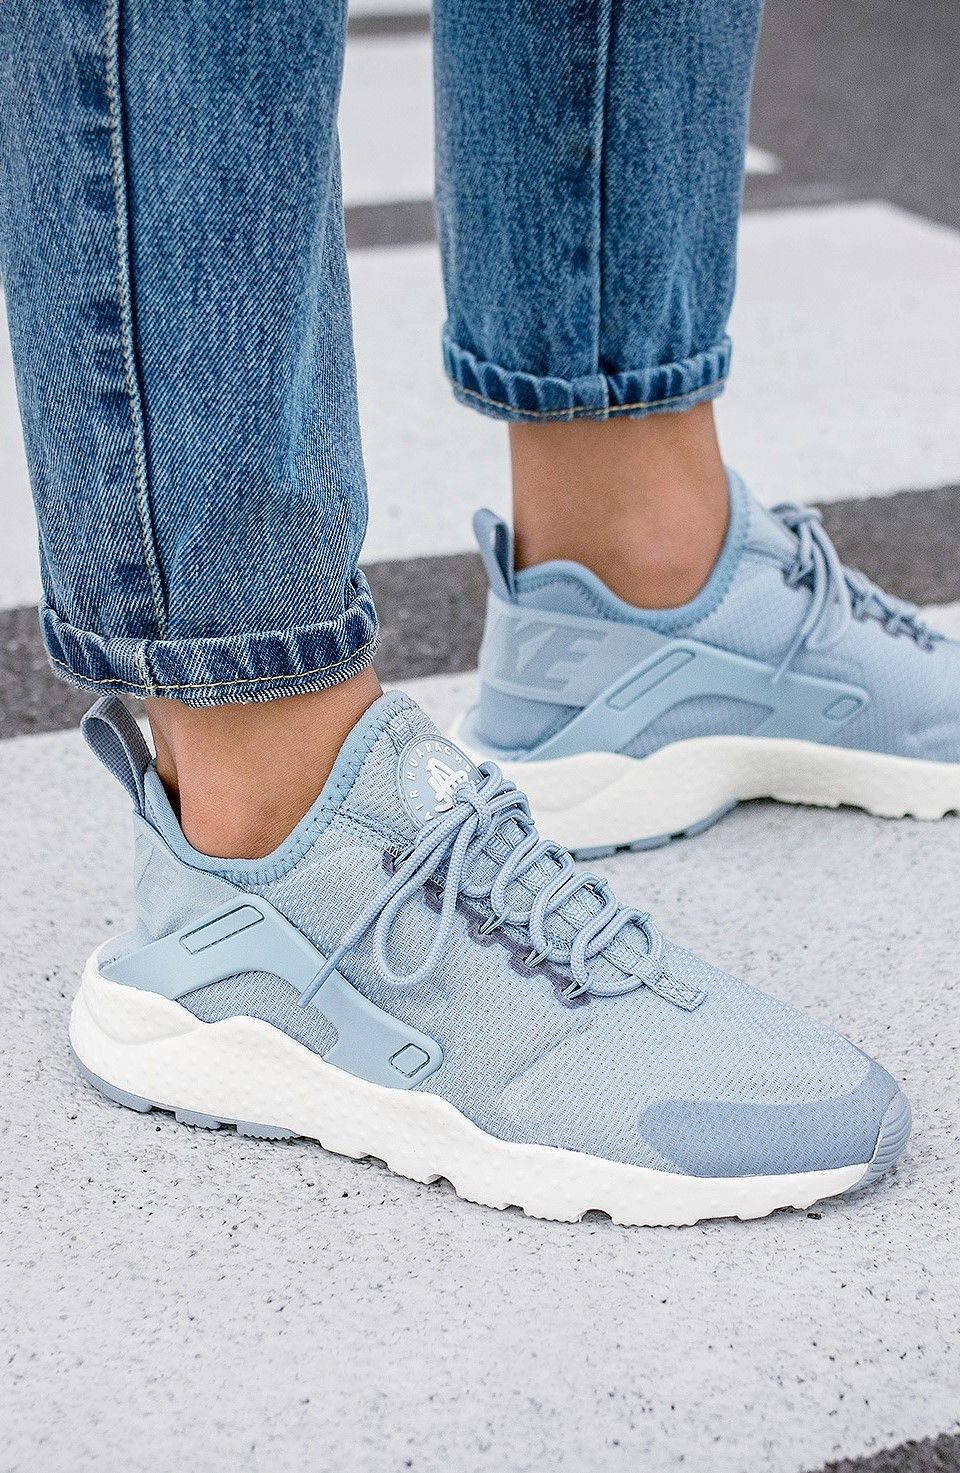 73a8ea9c9a43d Nike Wmns Air Huarache Run Ultra  Blue Grey  (via Kicks-daily.com ...